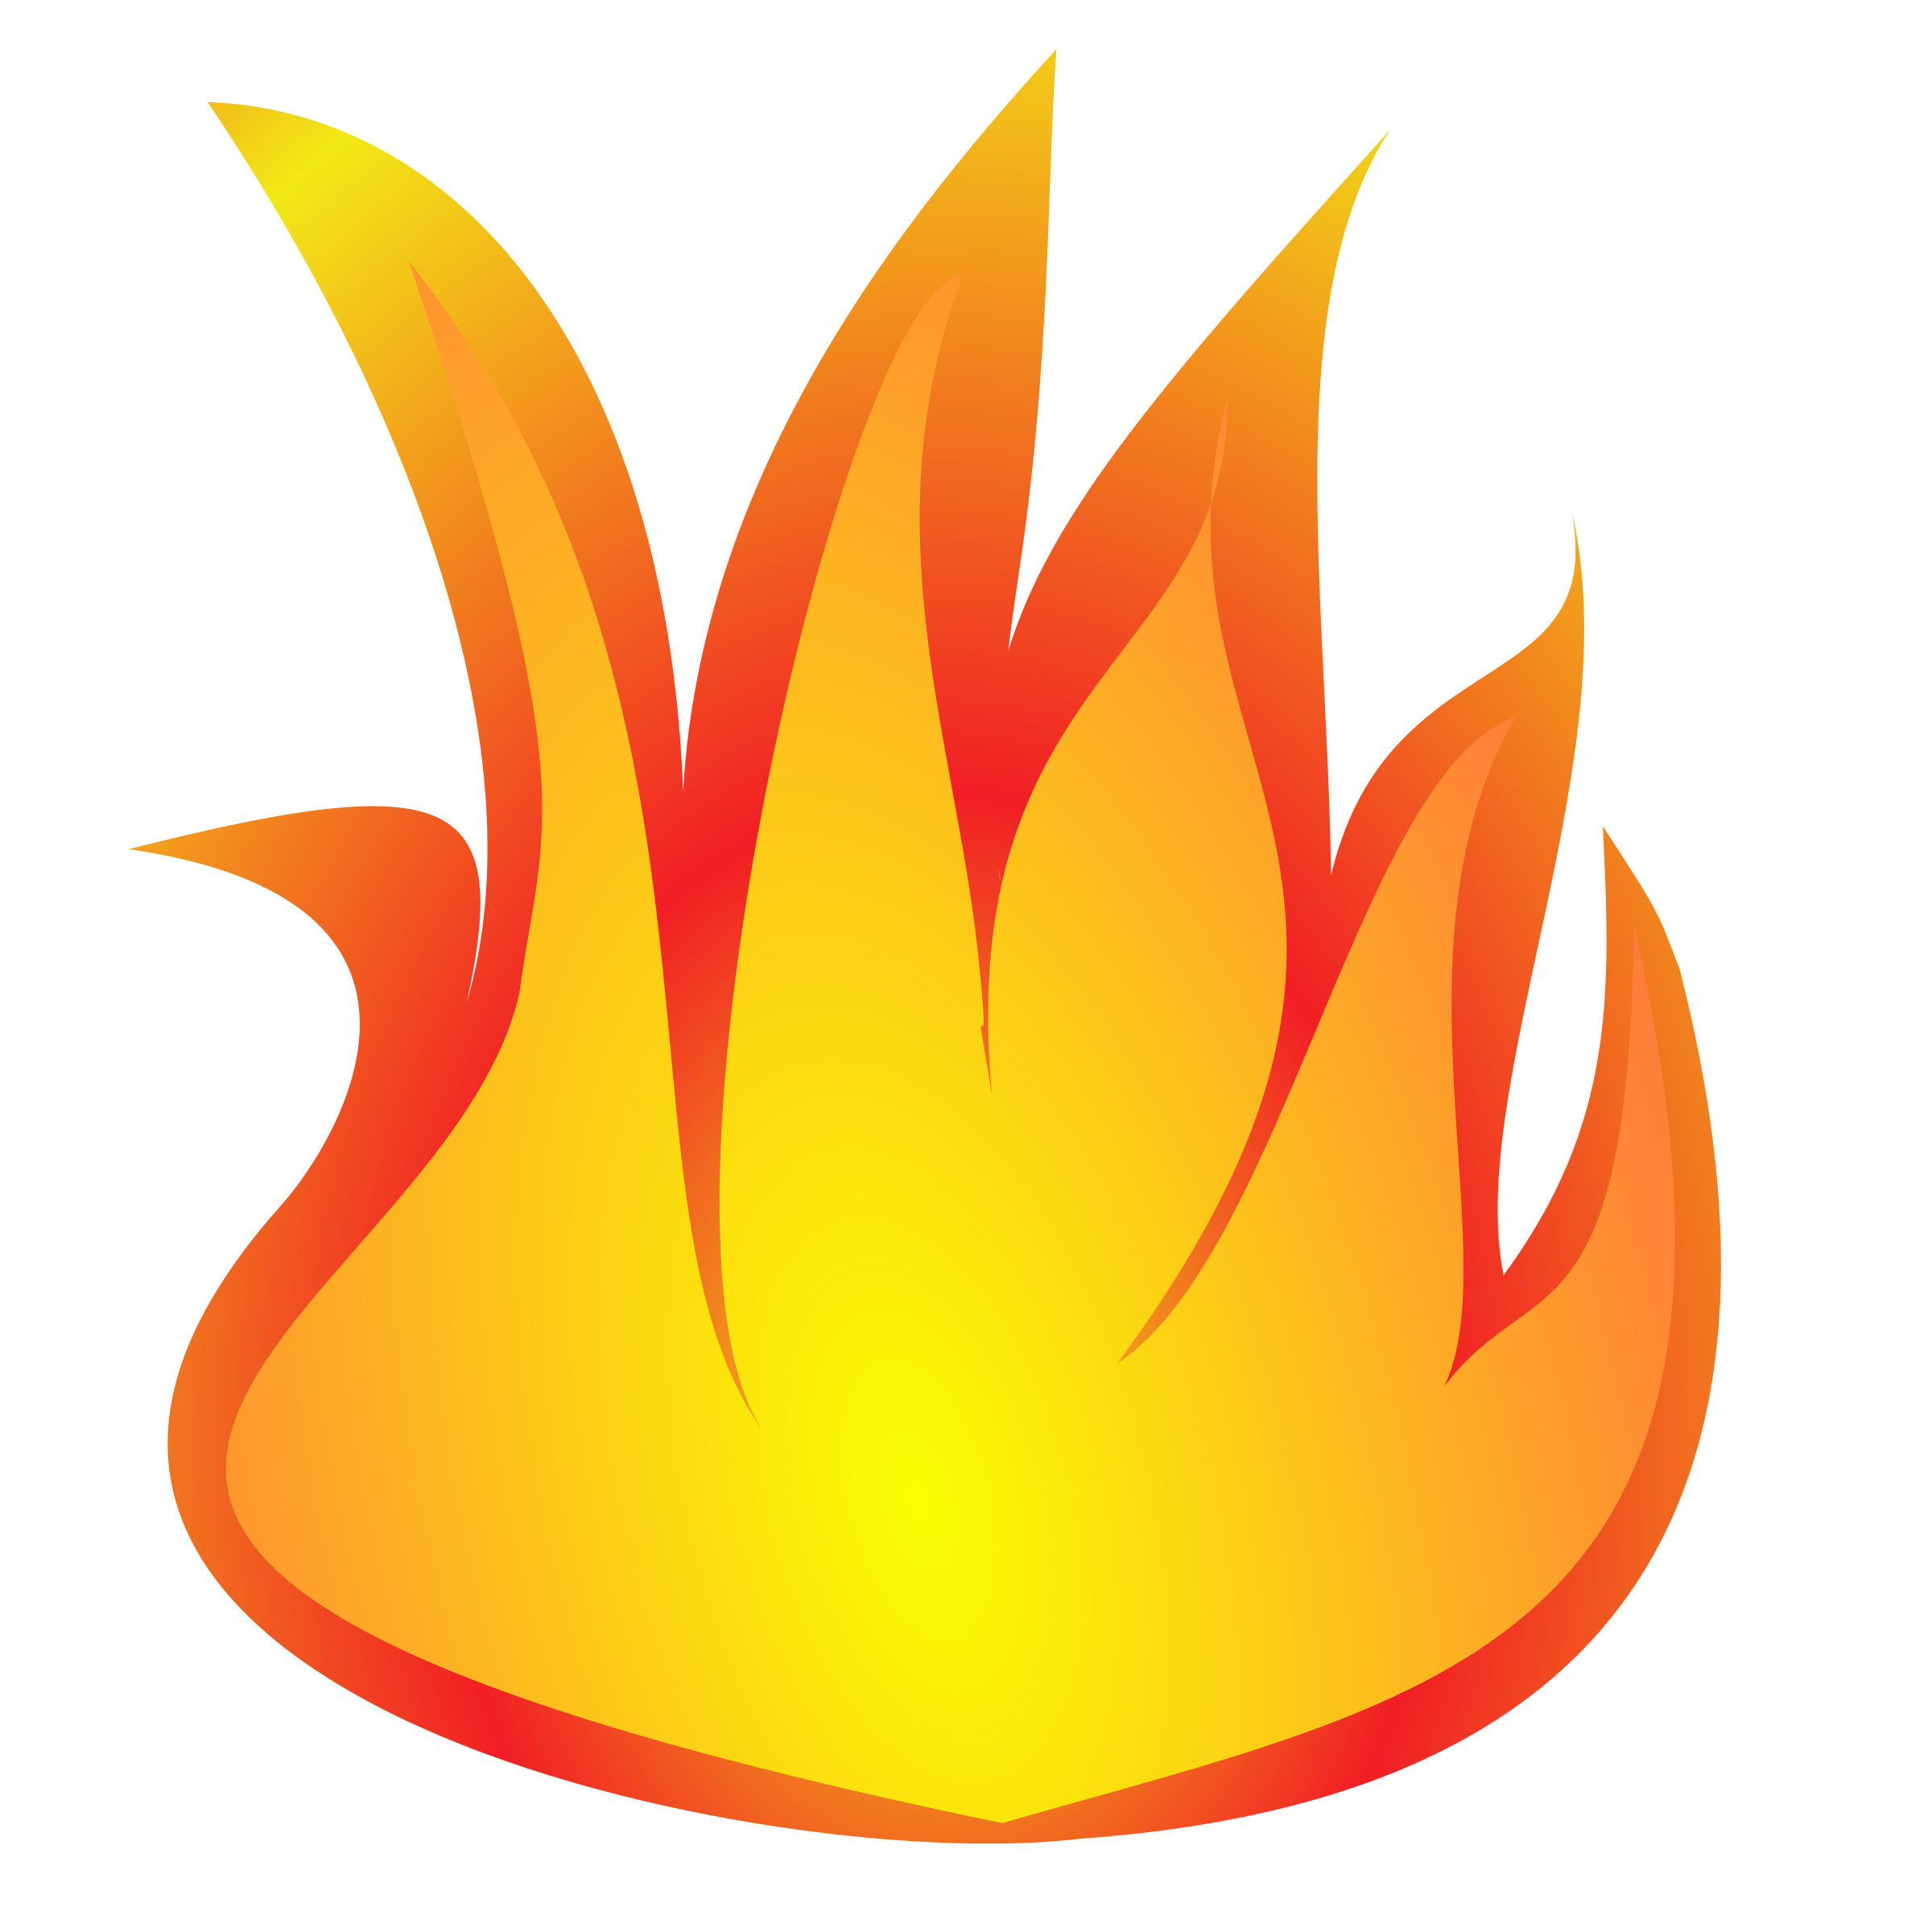 Fireplace fire clipart free clipart image